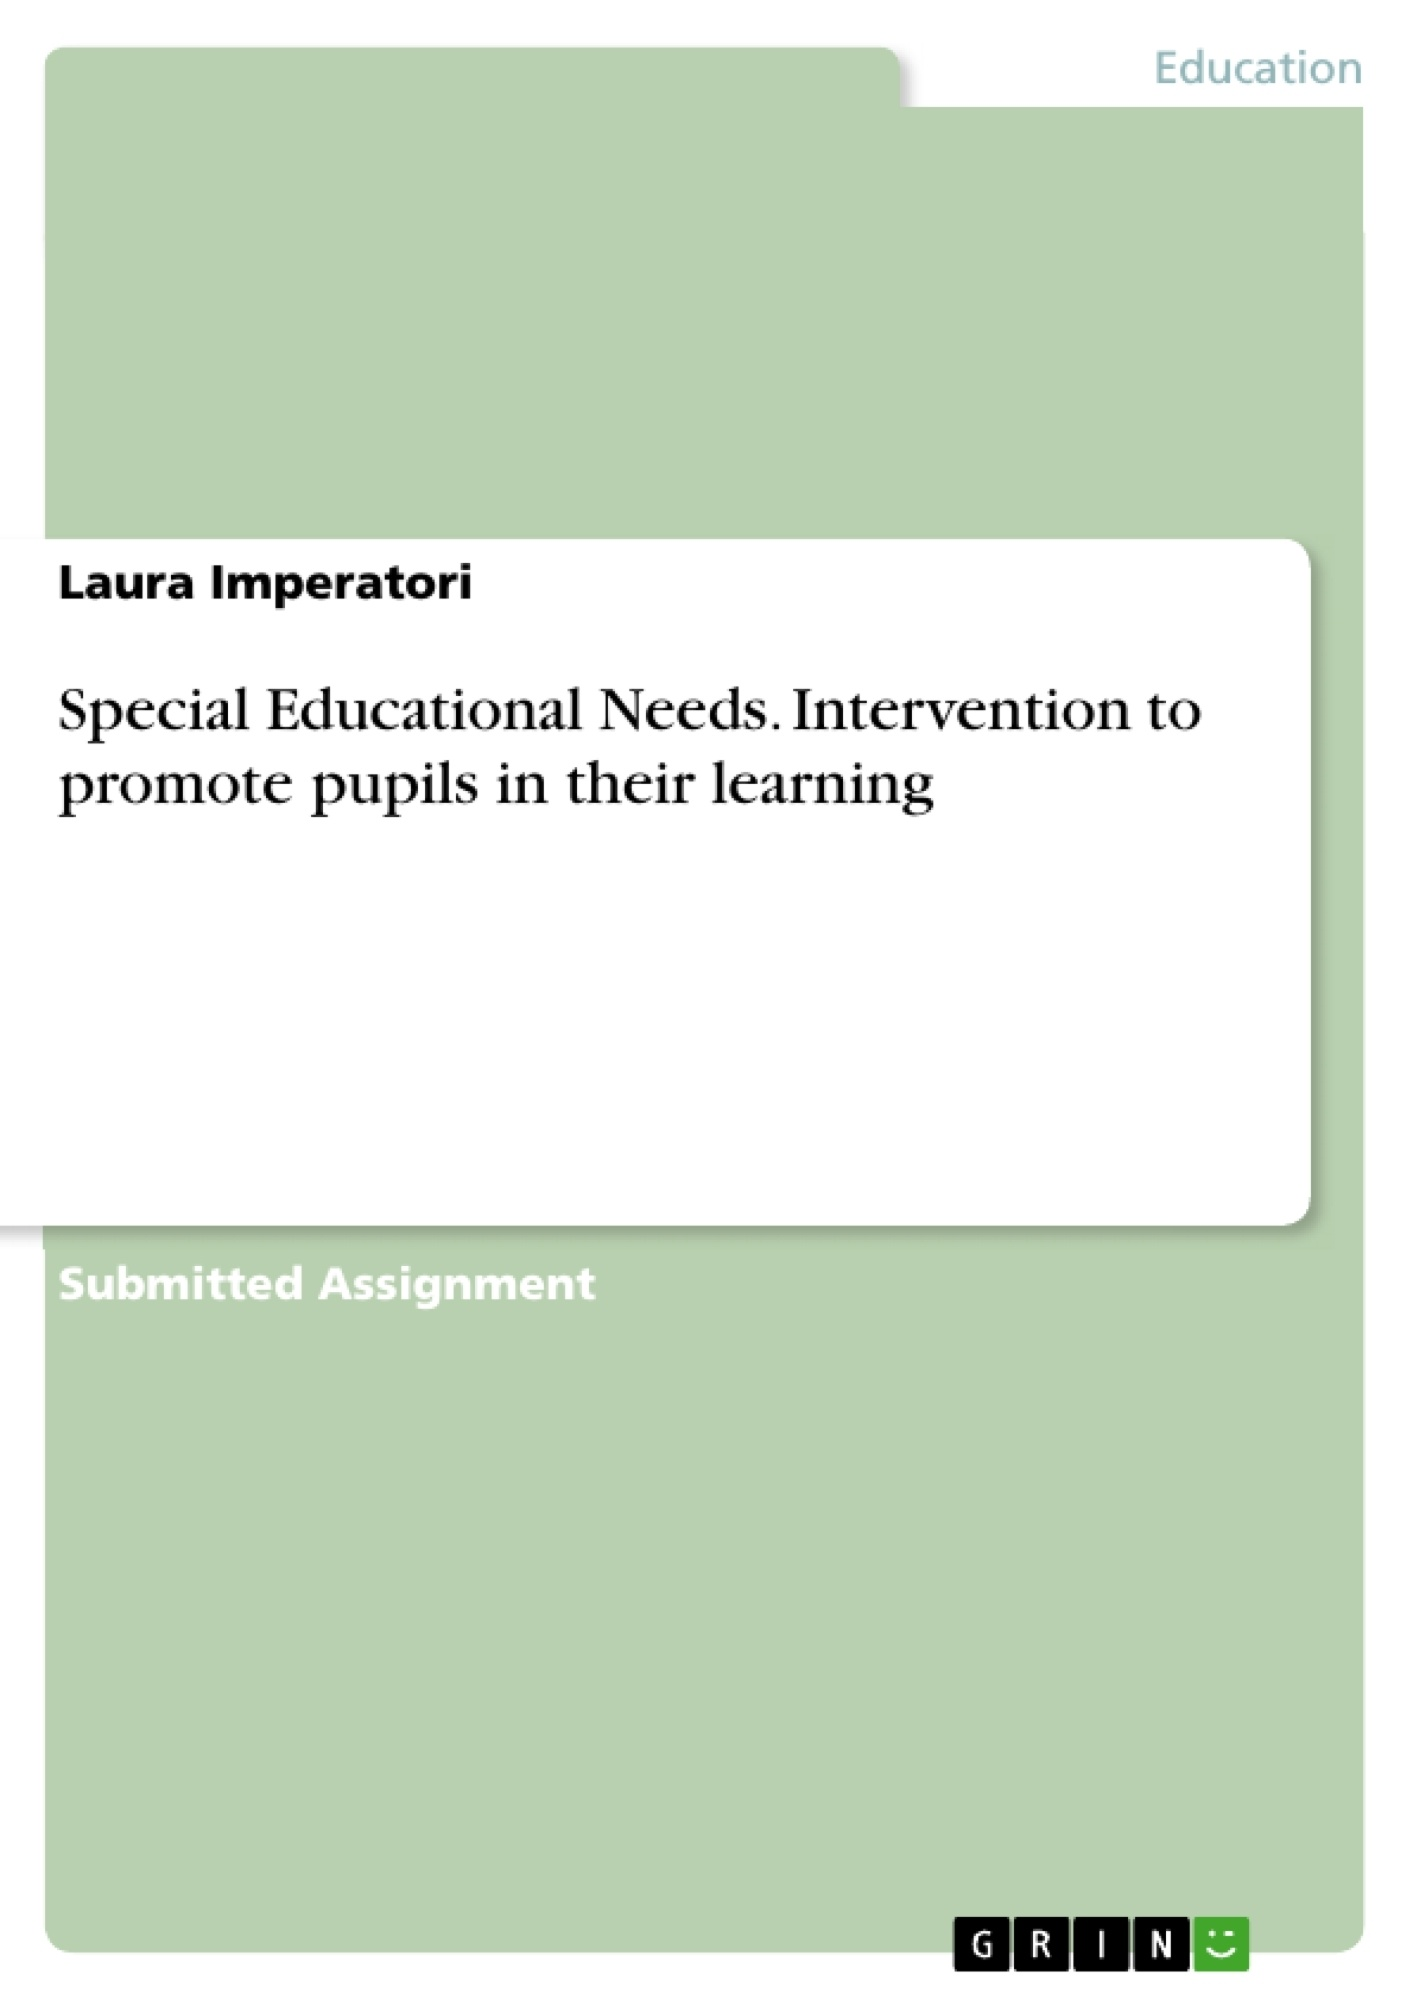 Title: Special Educational Needs. Intervention to promote pupils in their learning